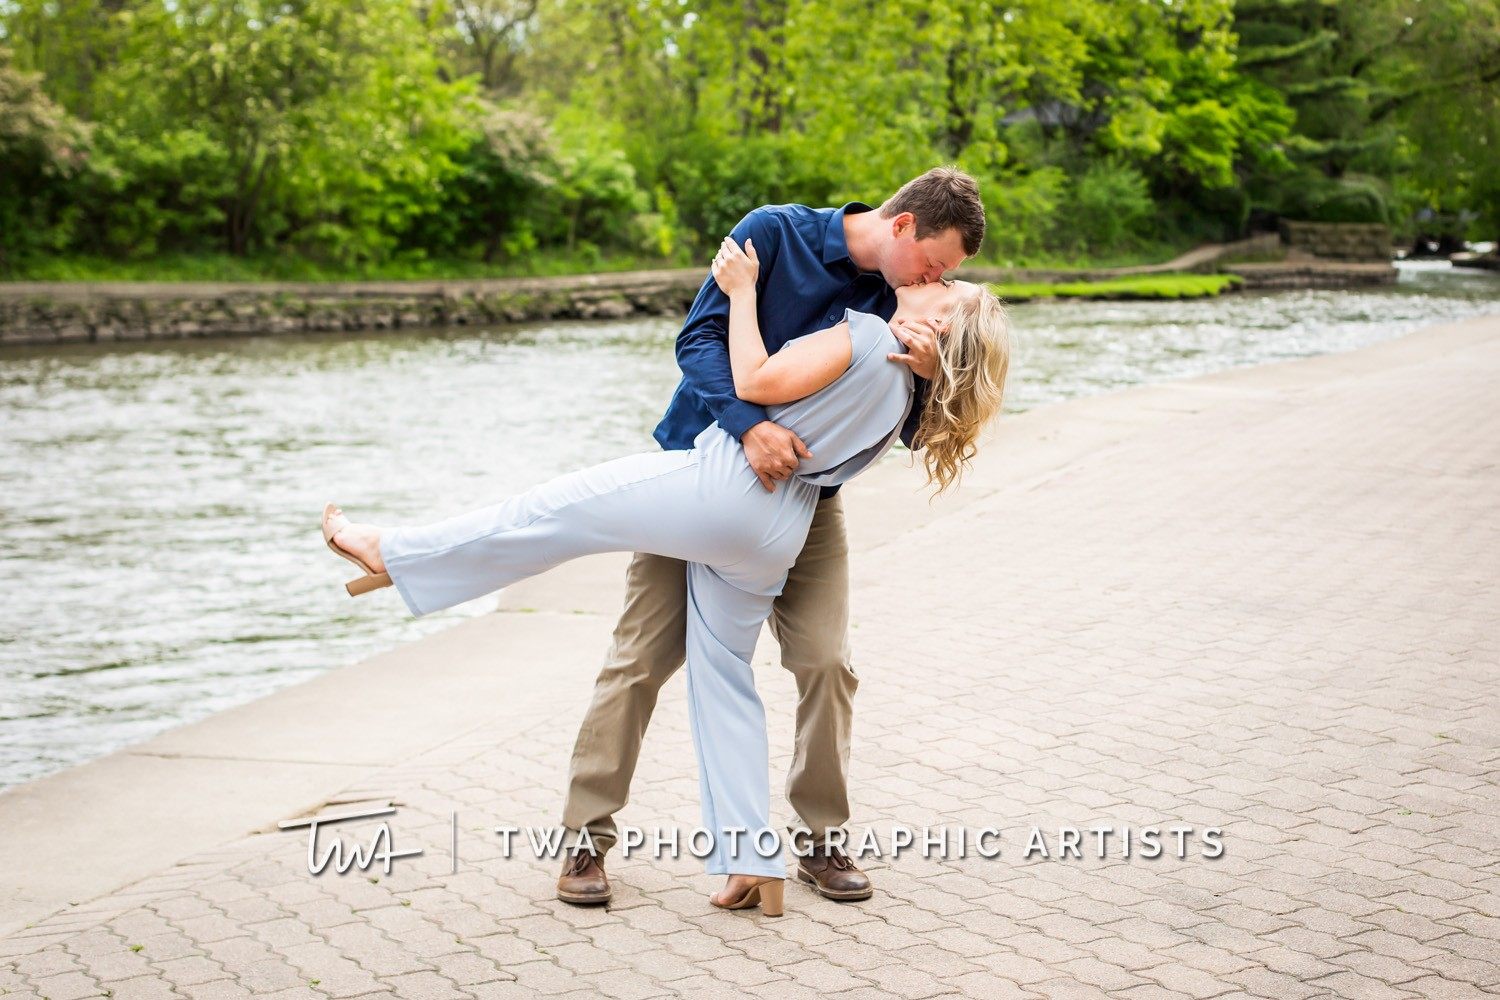 Chicago-Wedding-Photographer-TWA-Photographic-Artists-Naperville-Riverwalk_Fletcher_McDonough_MJ-033